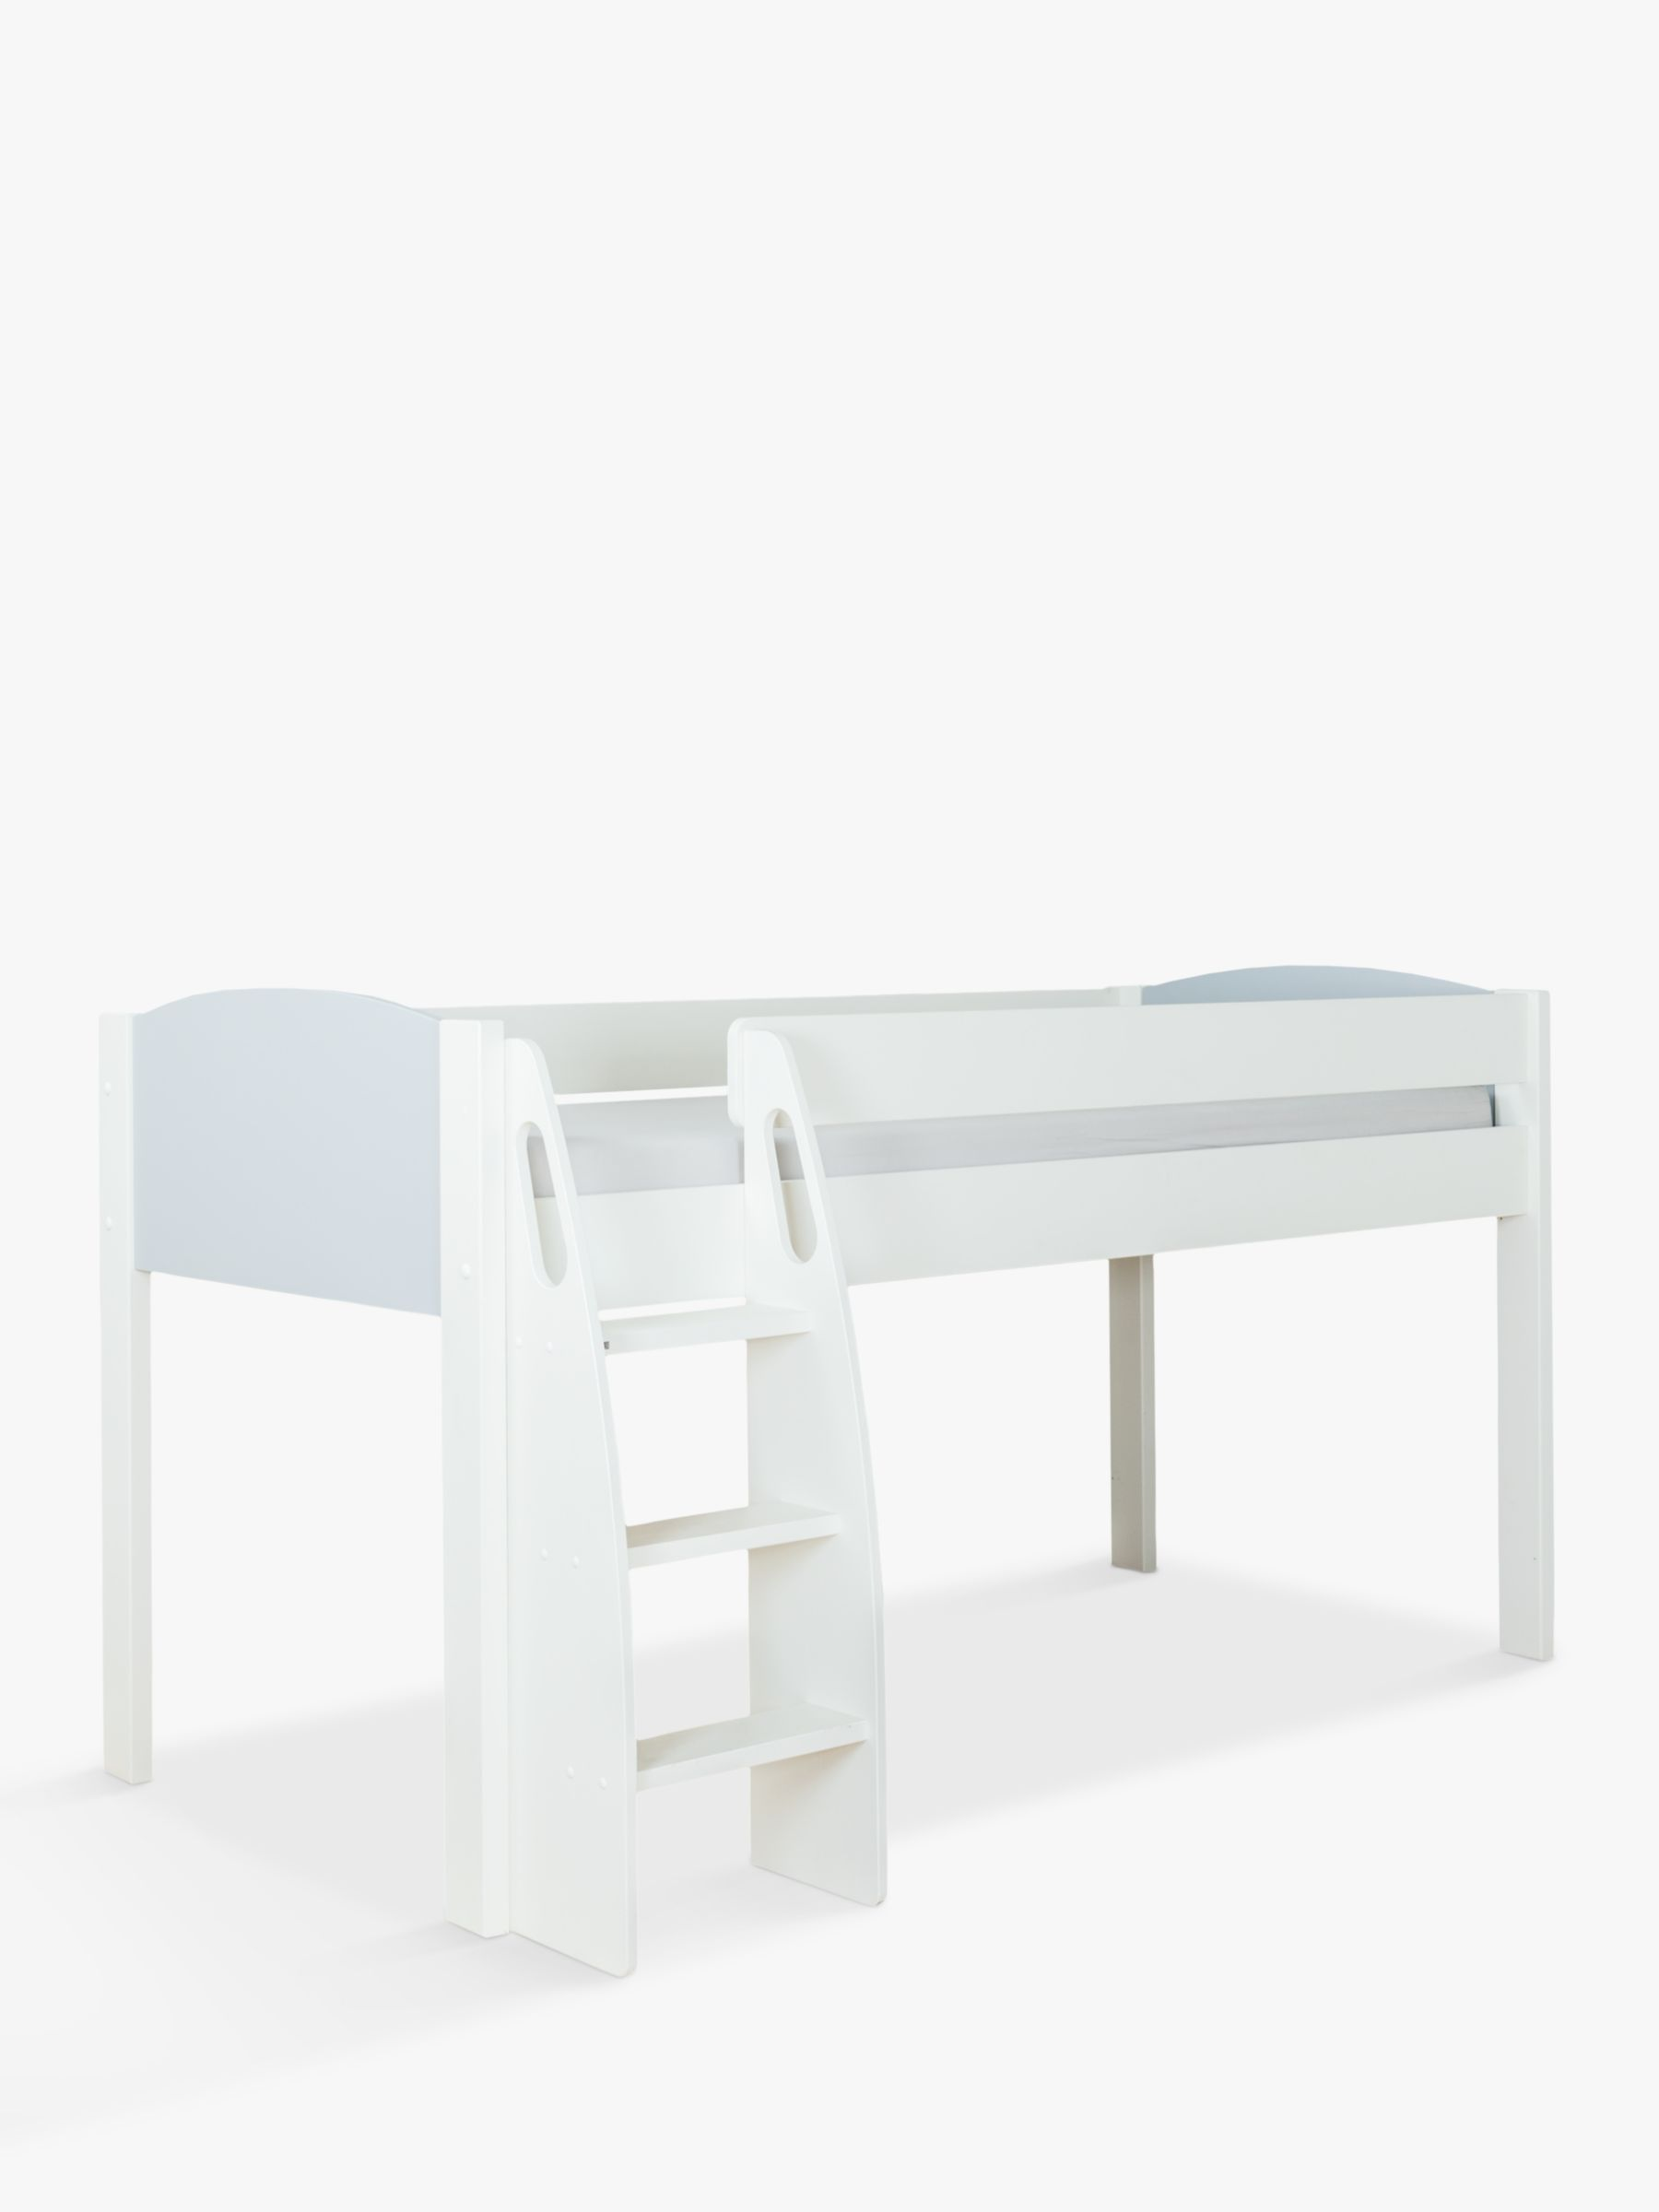 Stompa Stompa Uno S Plus Mid-sleeper Bed Frame